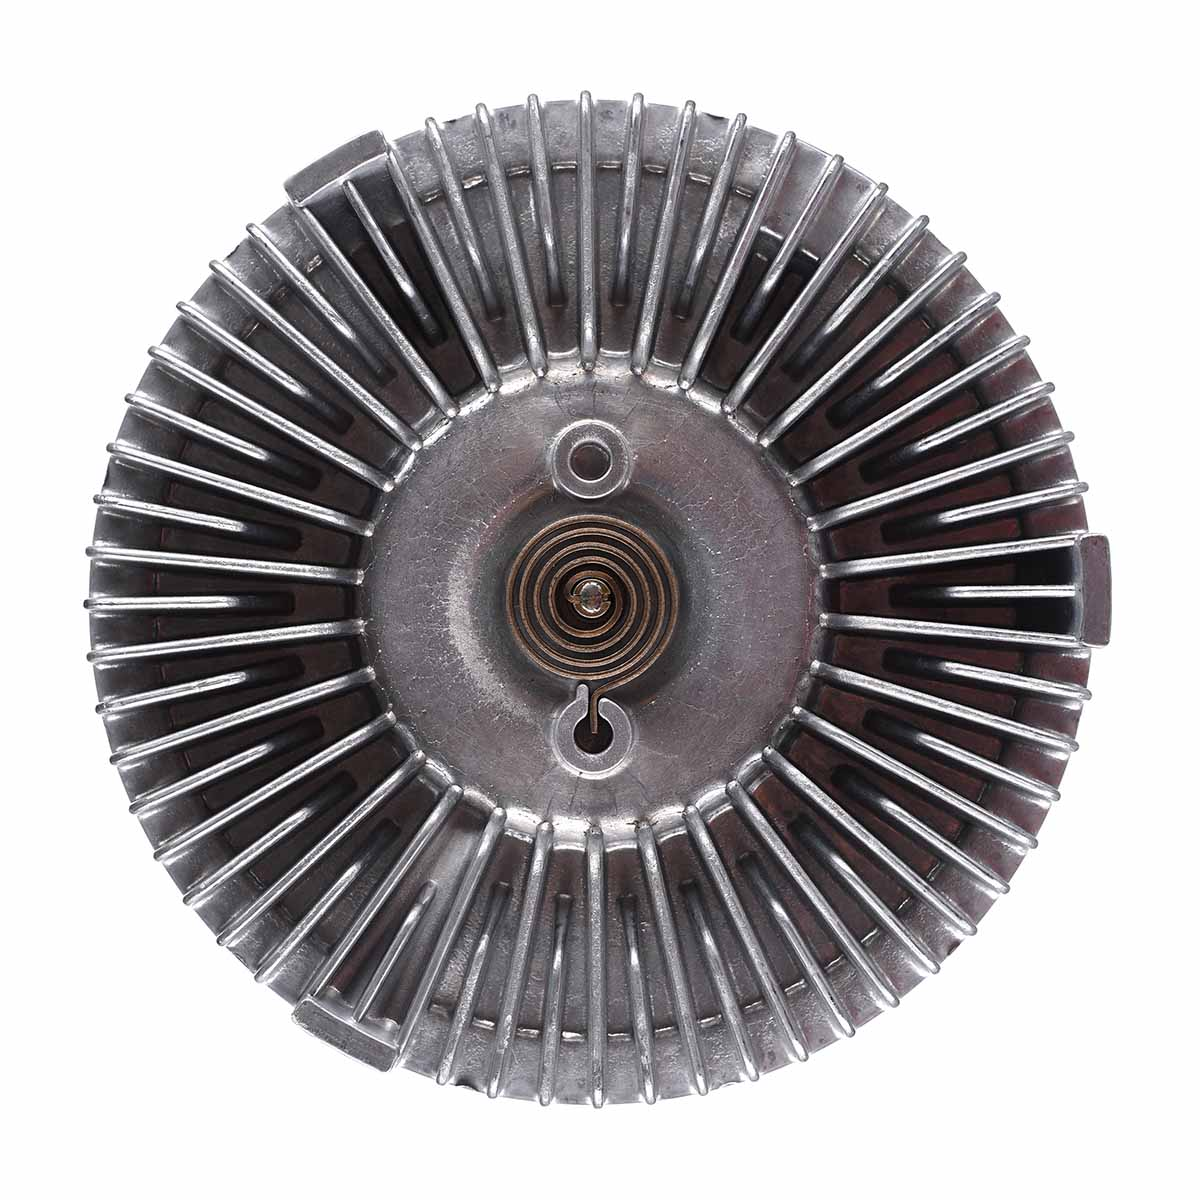 hight resolution of cooling fan clutch for cadillac escalade chevrolet gmc yukon savana sierrac k 1500 oldsmobile hummer h2 4 3 4 8l 5 3l 5 7l 6 0l in fans kits from